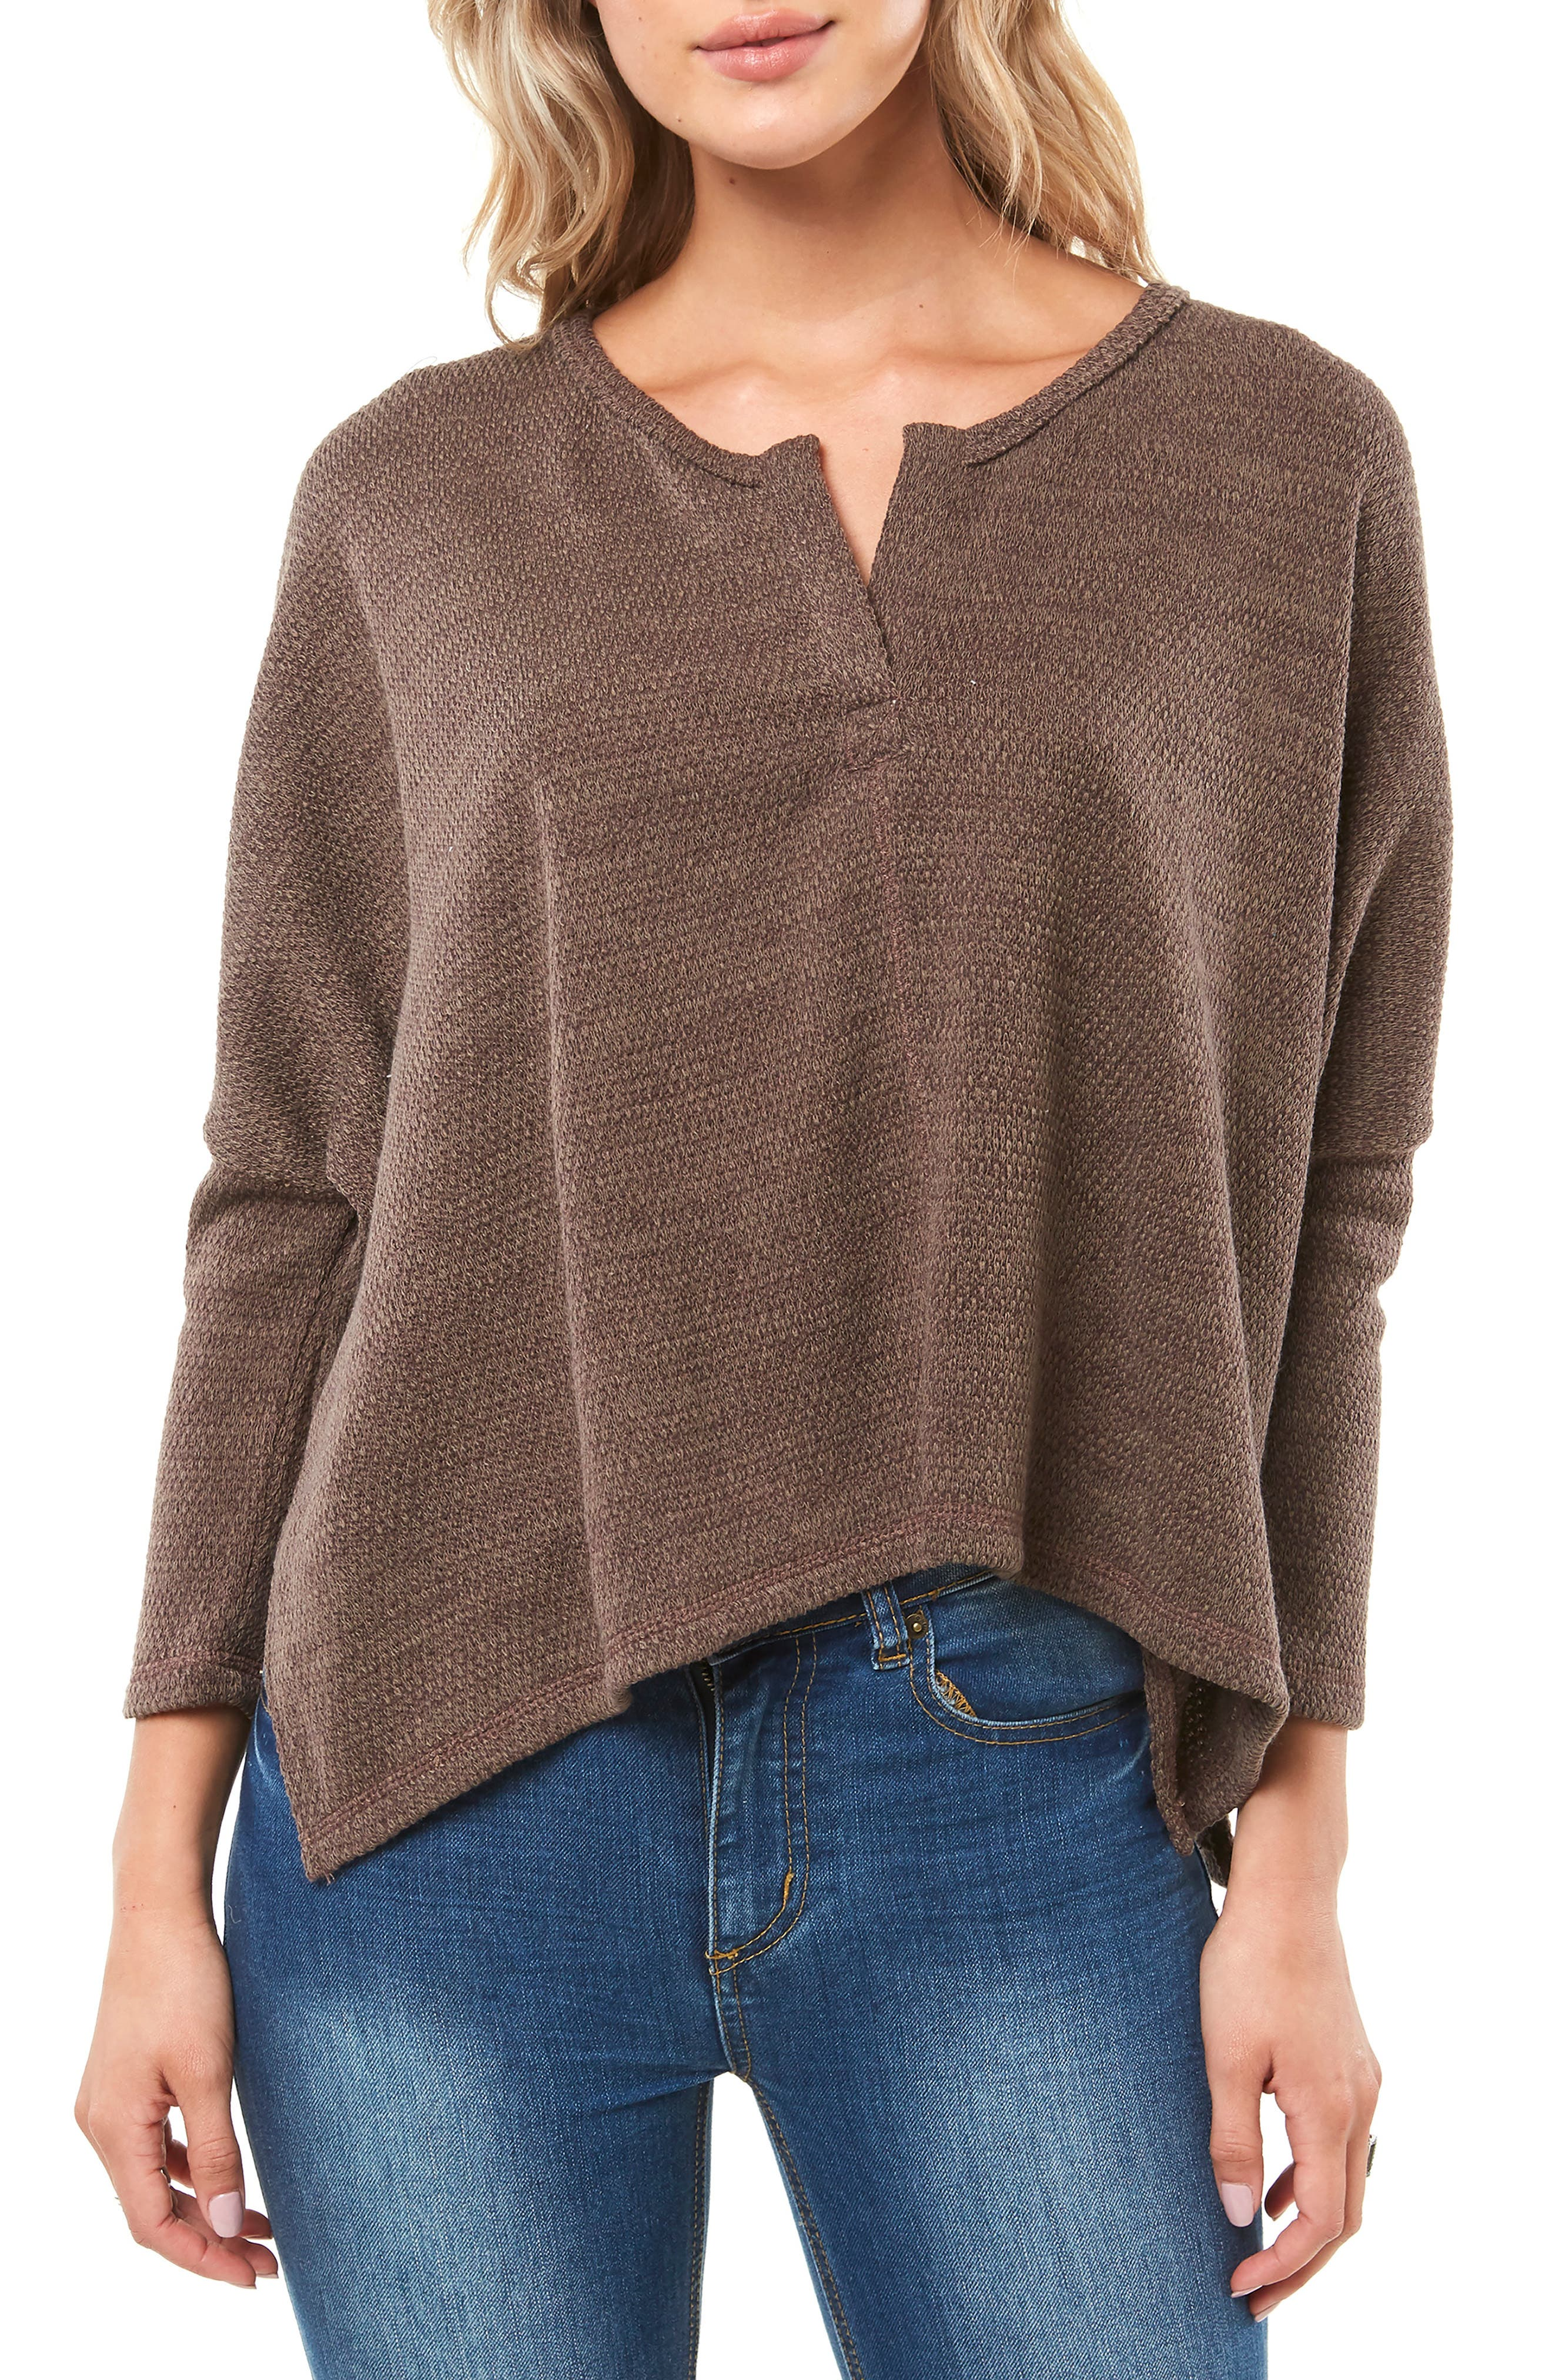 Pines Knit Top,                         Main,                         color, PEPPERCORN